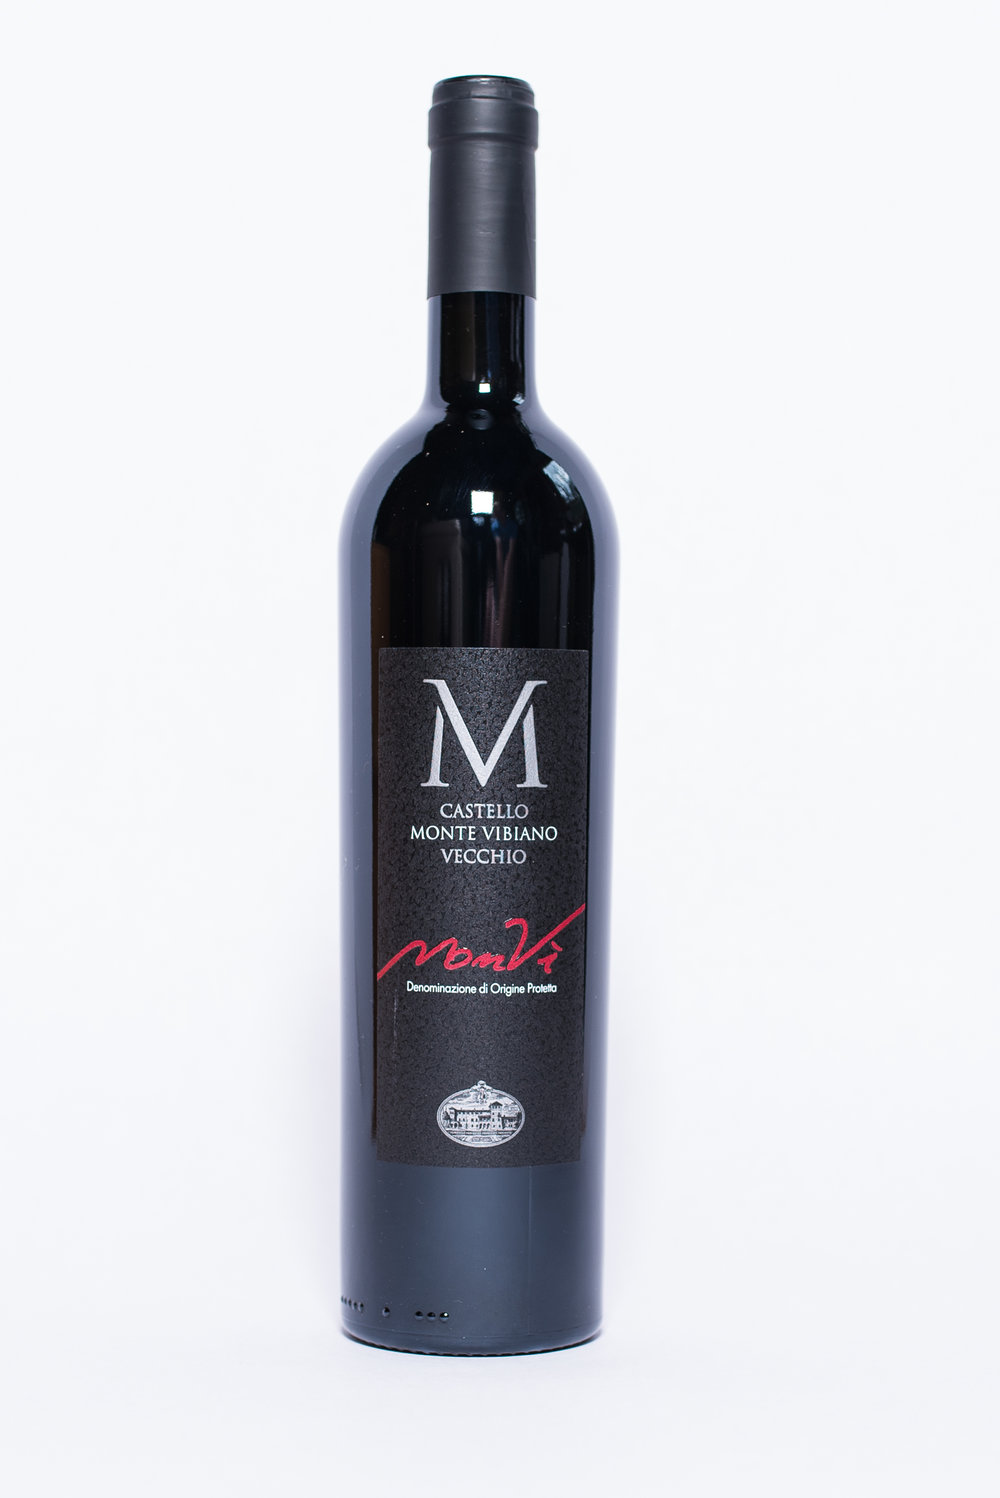 MonVì 2014    Producer:   Castello Monte Vibiano    Region:  Umbria  Grapes:  Sangiovese, Merlot, Cabernet Sauvignon and Cabernet Franc  Characteristics:  Complex, fruity aromas of blackberry and cherries with spiced notes. Medium bodied, the MonVì pairs excellently with risottos and barbecued food.